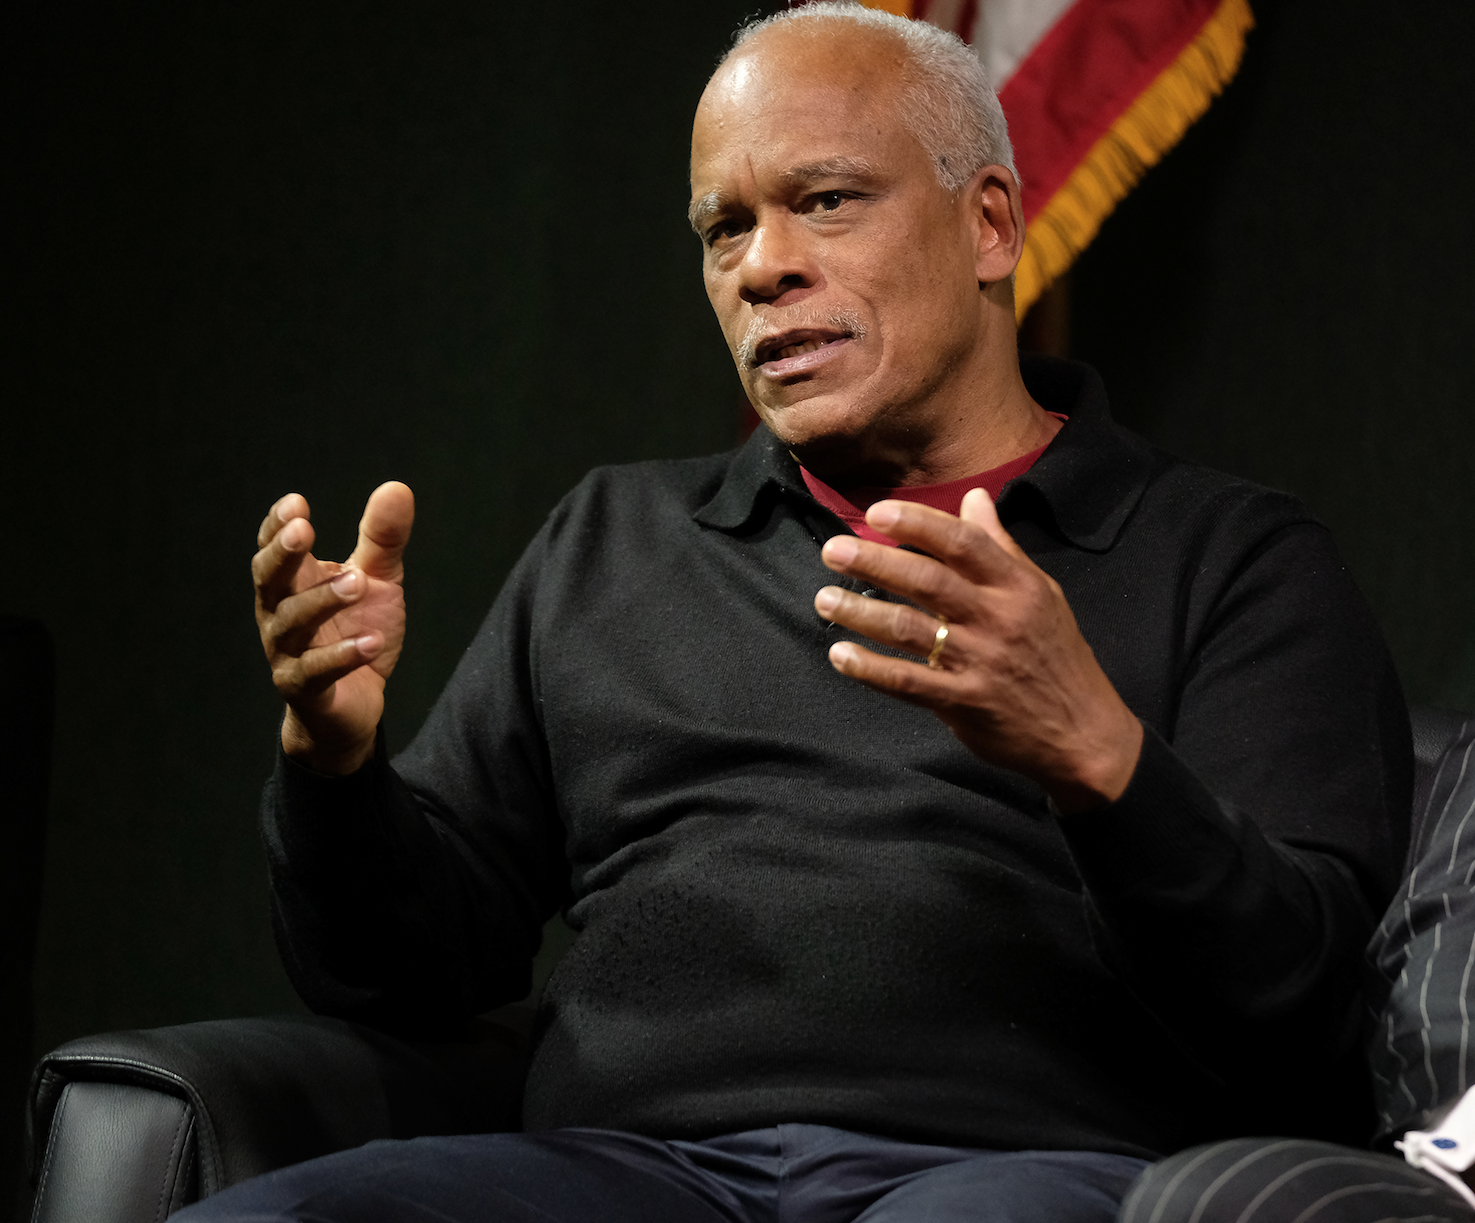 """Documentary filmmaker Stanley Nelson said """"Tell Them We Are Rising"""" highlights the importance of HBCUs. The institutions are credited with pulling people out of poverty and paving a path to the American dream. The film took 10 years to complete. He said, """"There's no way my mother and father would have gone to college if it had not been for HBCUs."""" (Photo by Charles A. Smith/JSU)"""